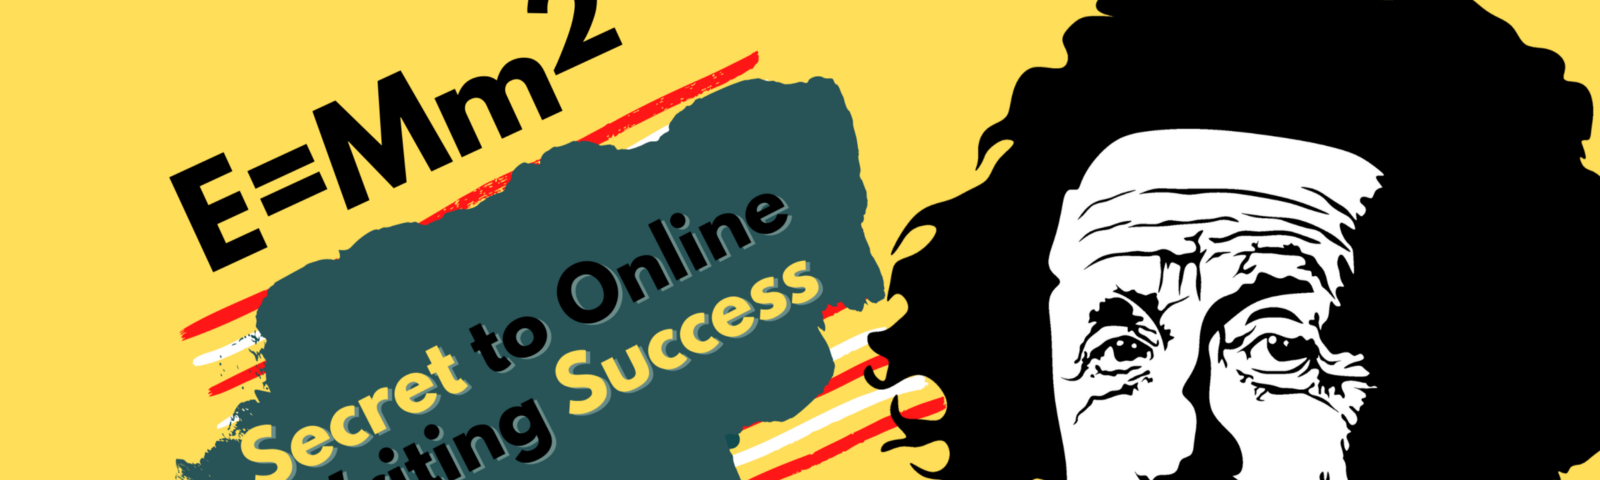 Einstein's Theory of Online Writing Success: E=Mm2